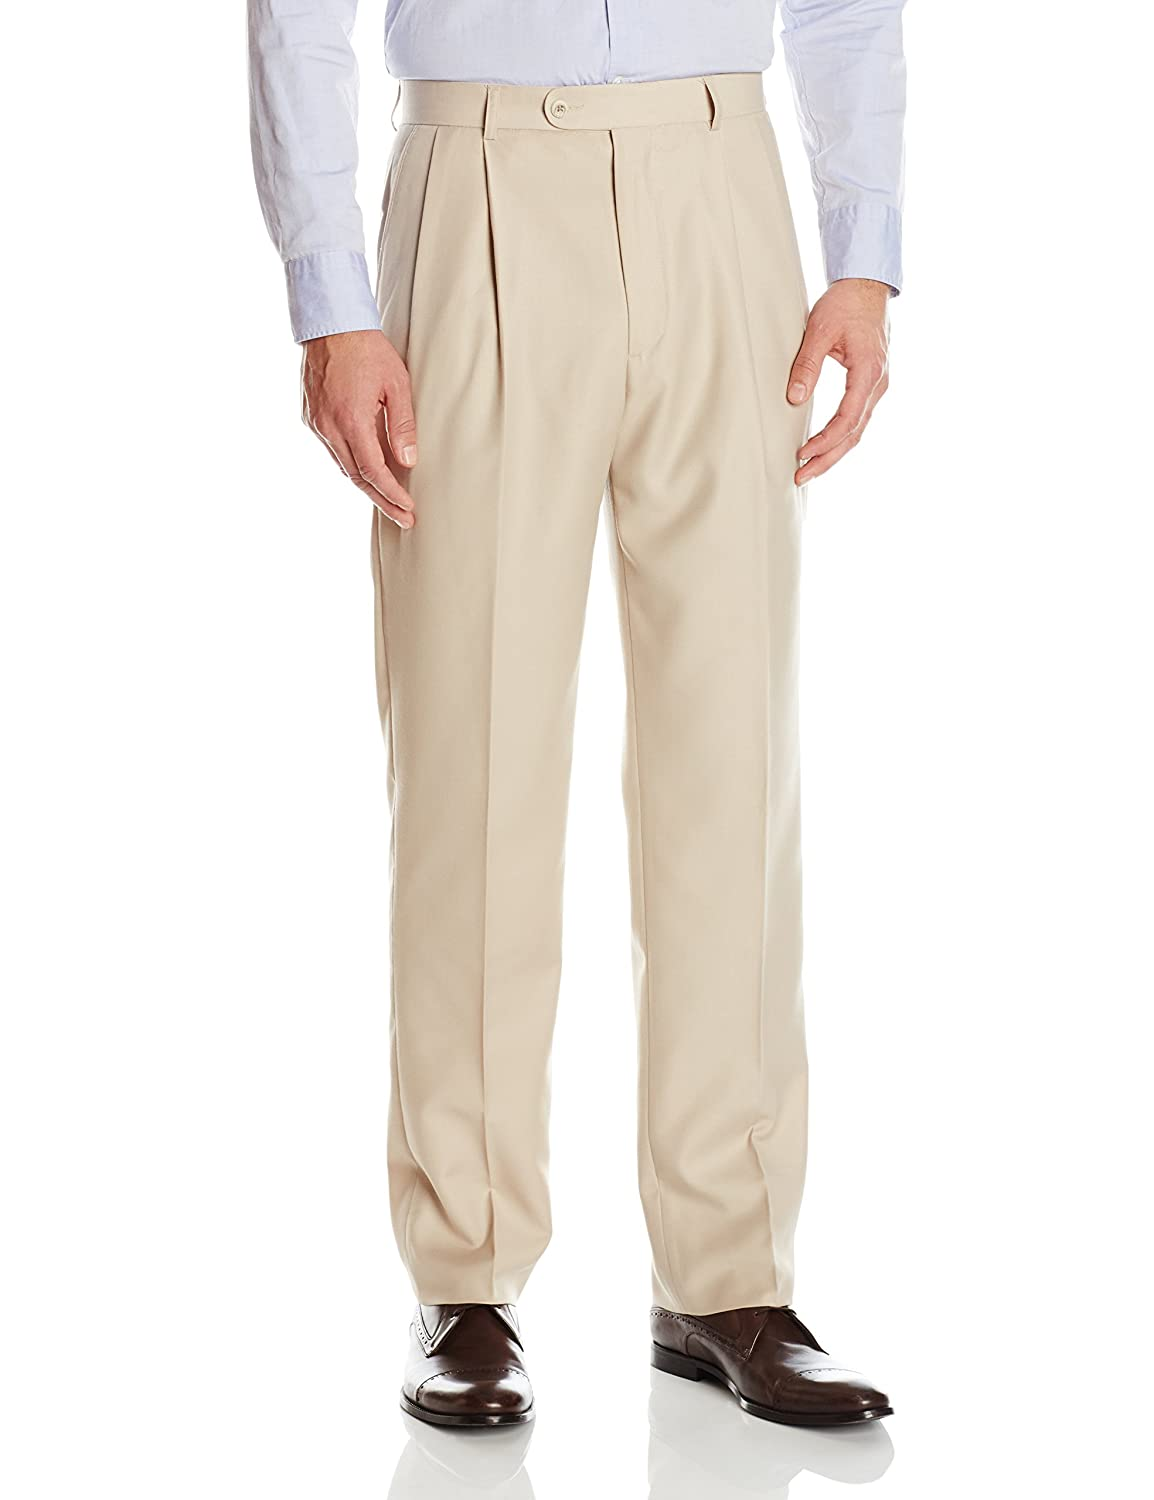 Linea Naturale Mens Pleated Travel Genius Microfiber Trouser Linea Naturale Child Code NA9402R